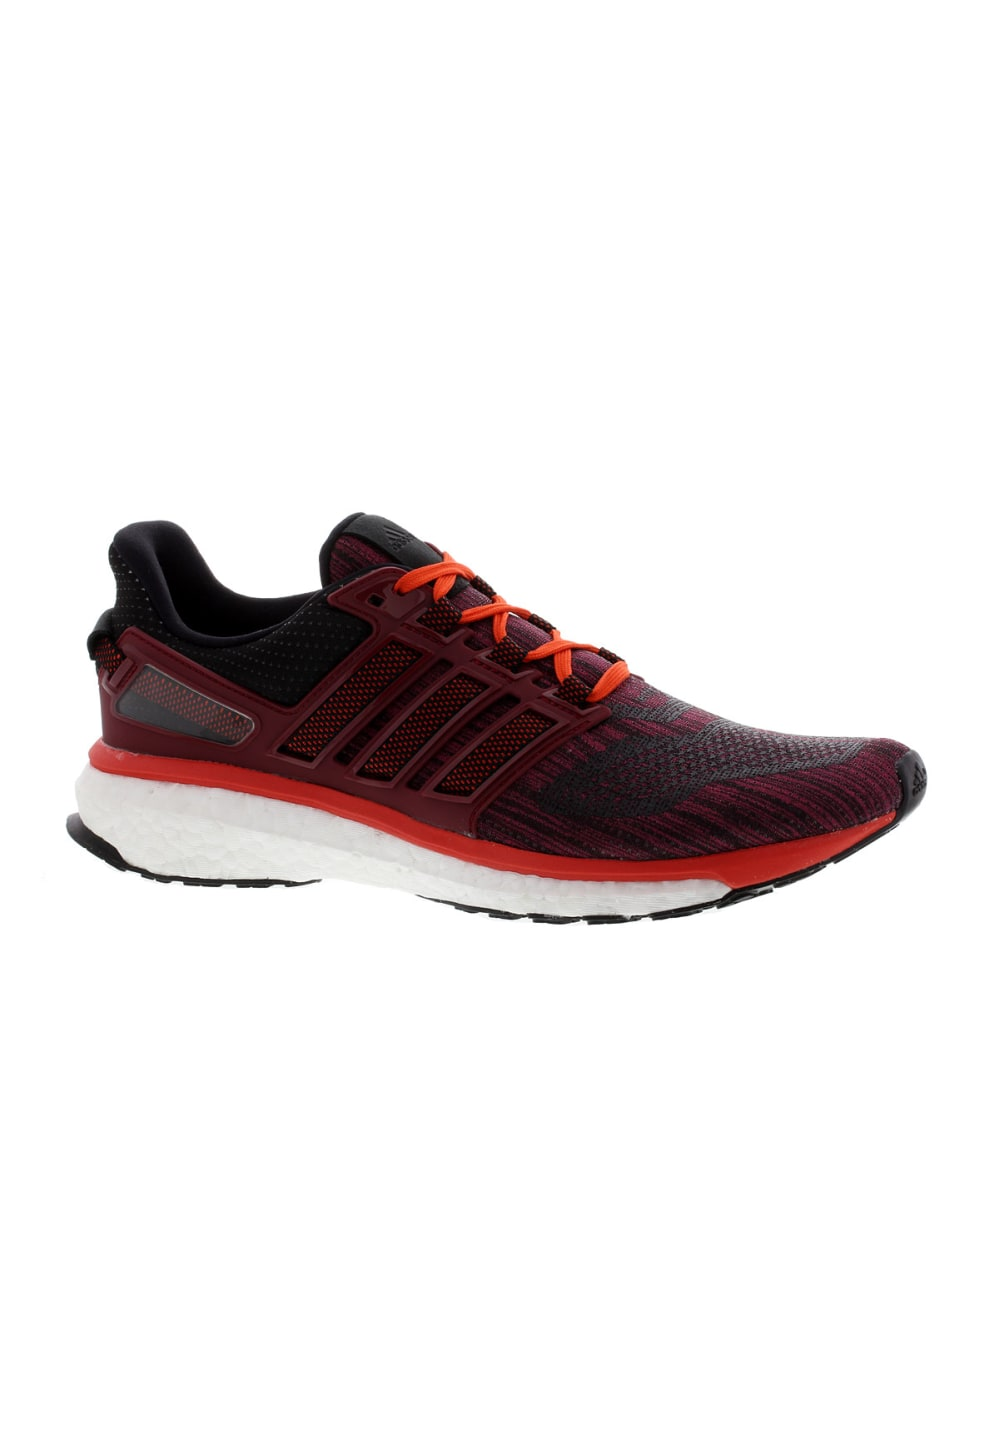 nouveaux styles 56261 2b977 adidas Energy Boost 3 M - Running shoes for Men - Brown